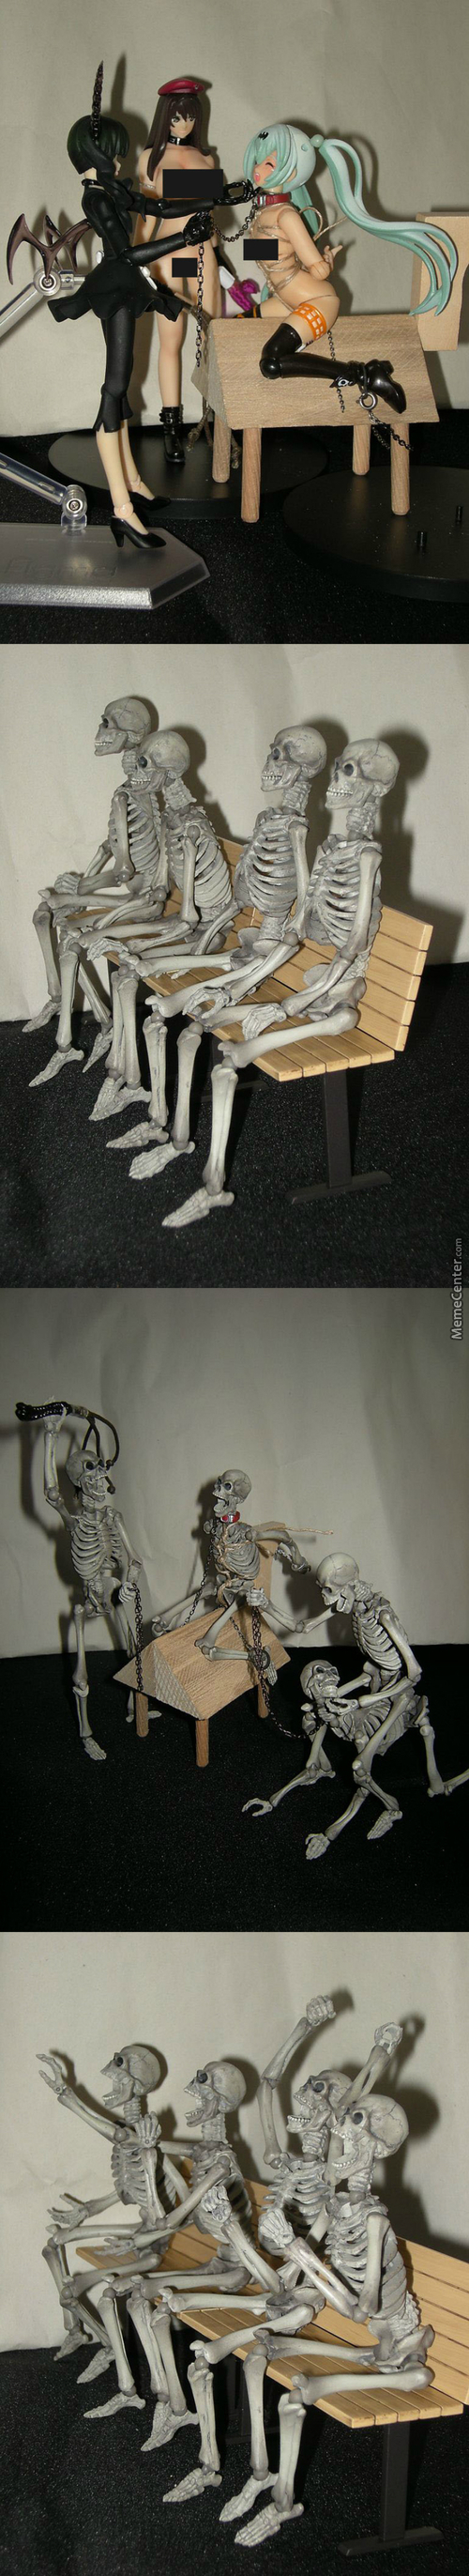 Skeletons Cant Have Boners..sigh But If U Play With Their Bone Juices They Can Get Spikers That Go In Ur Butt O﹃O)ノ